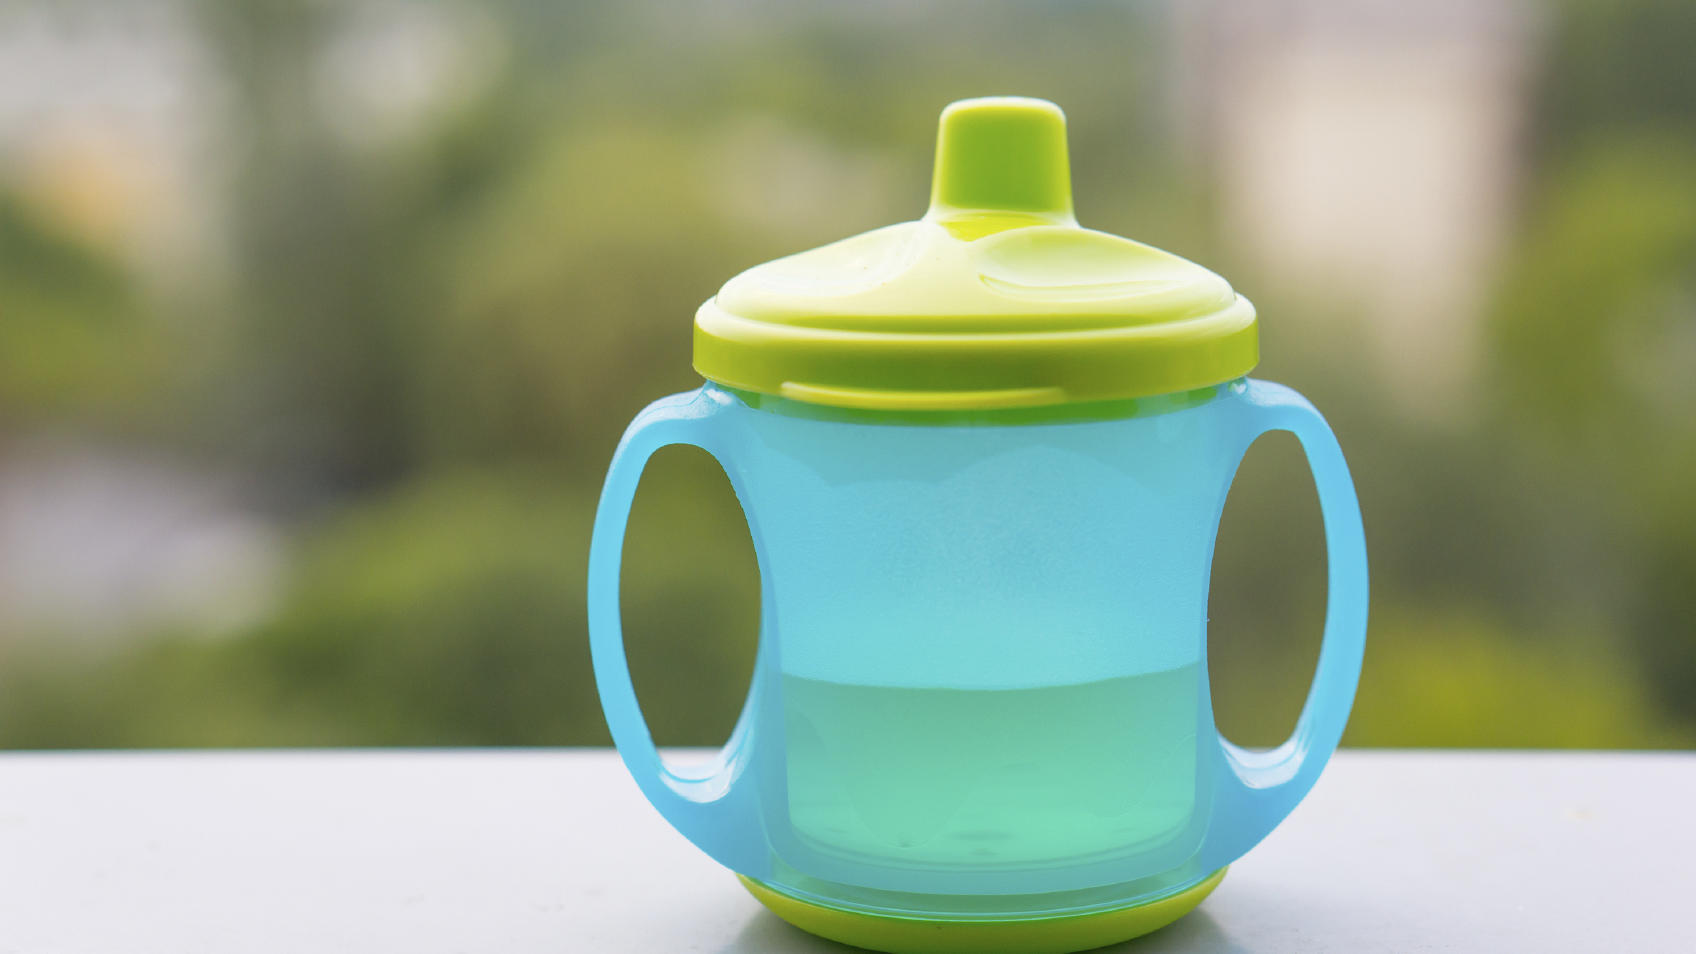 No more stinky sippy cups.